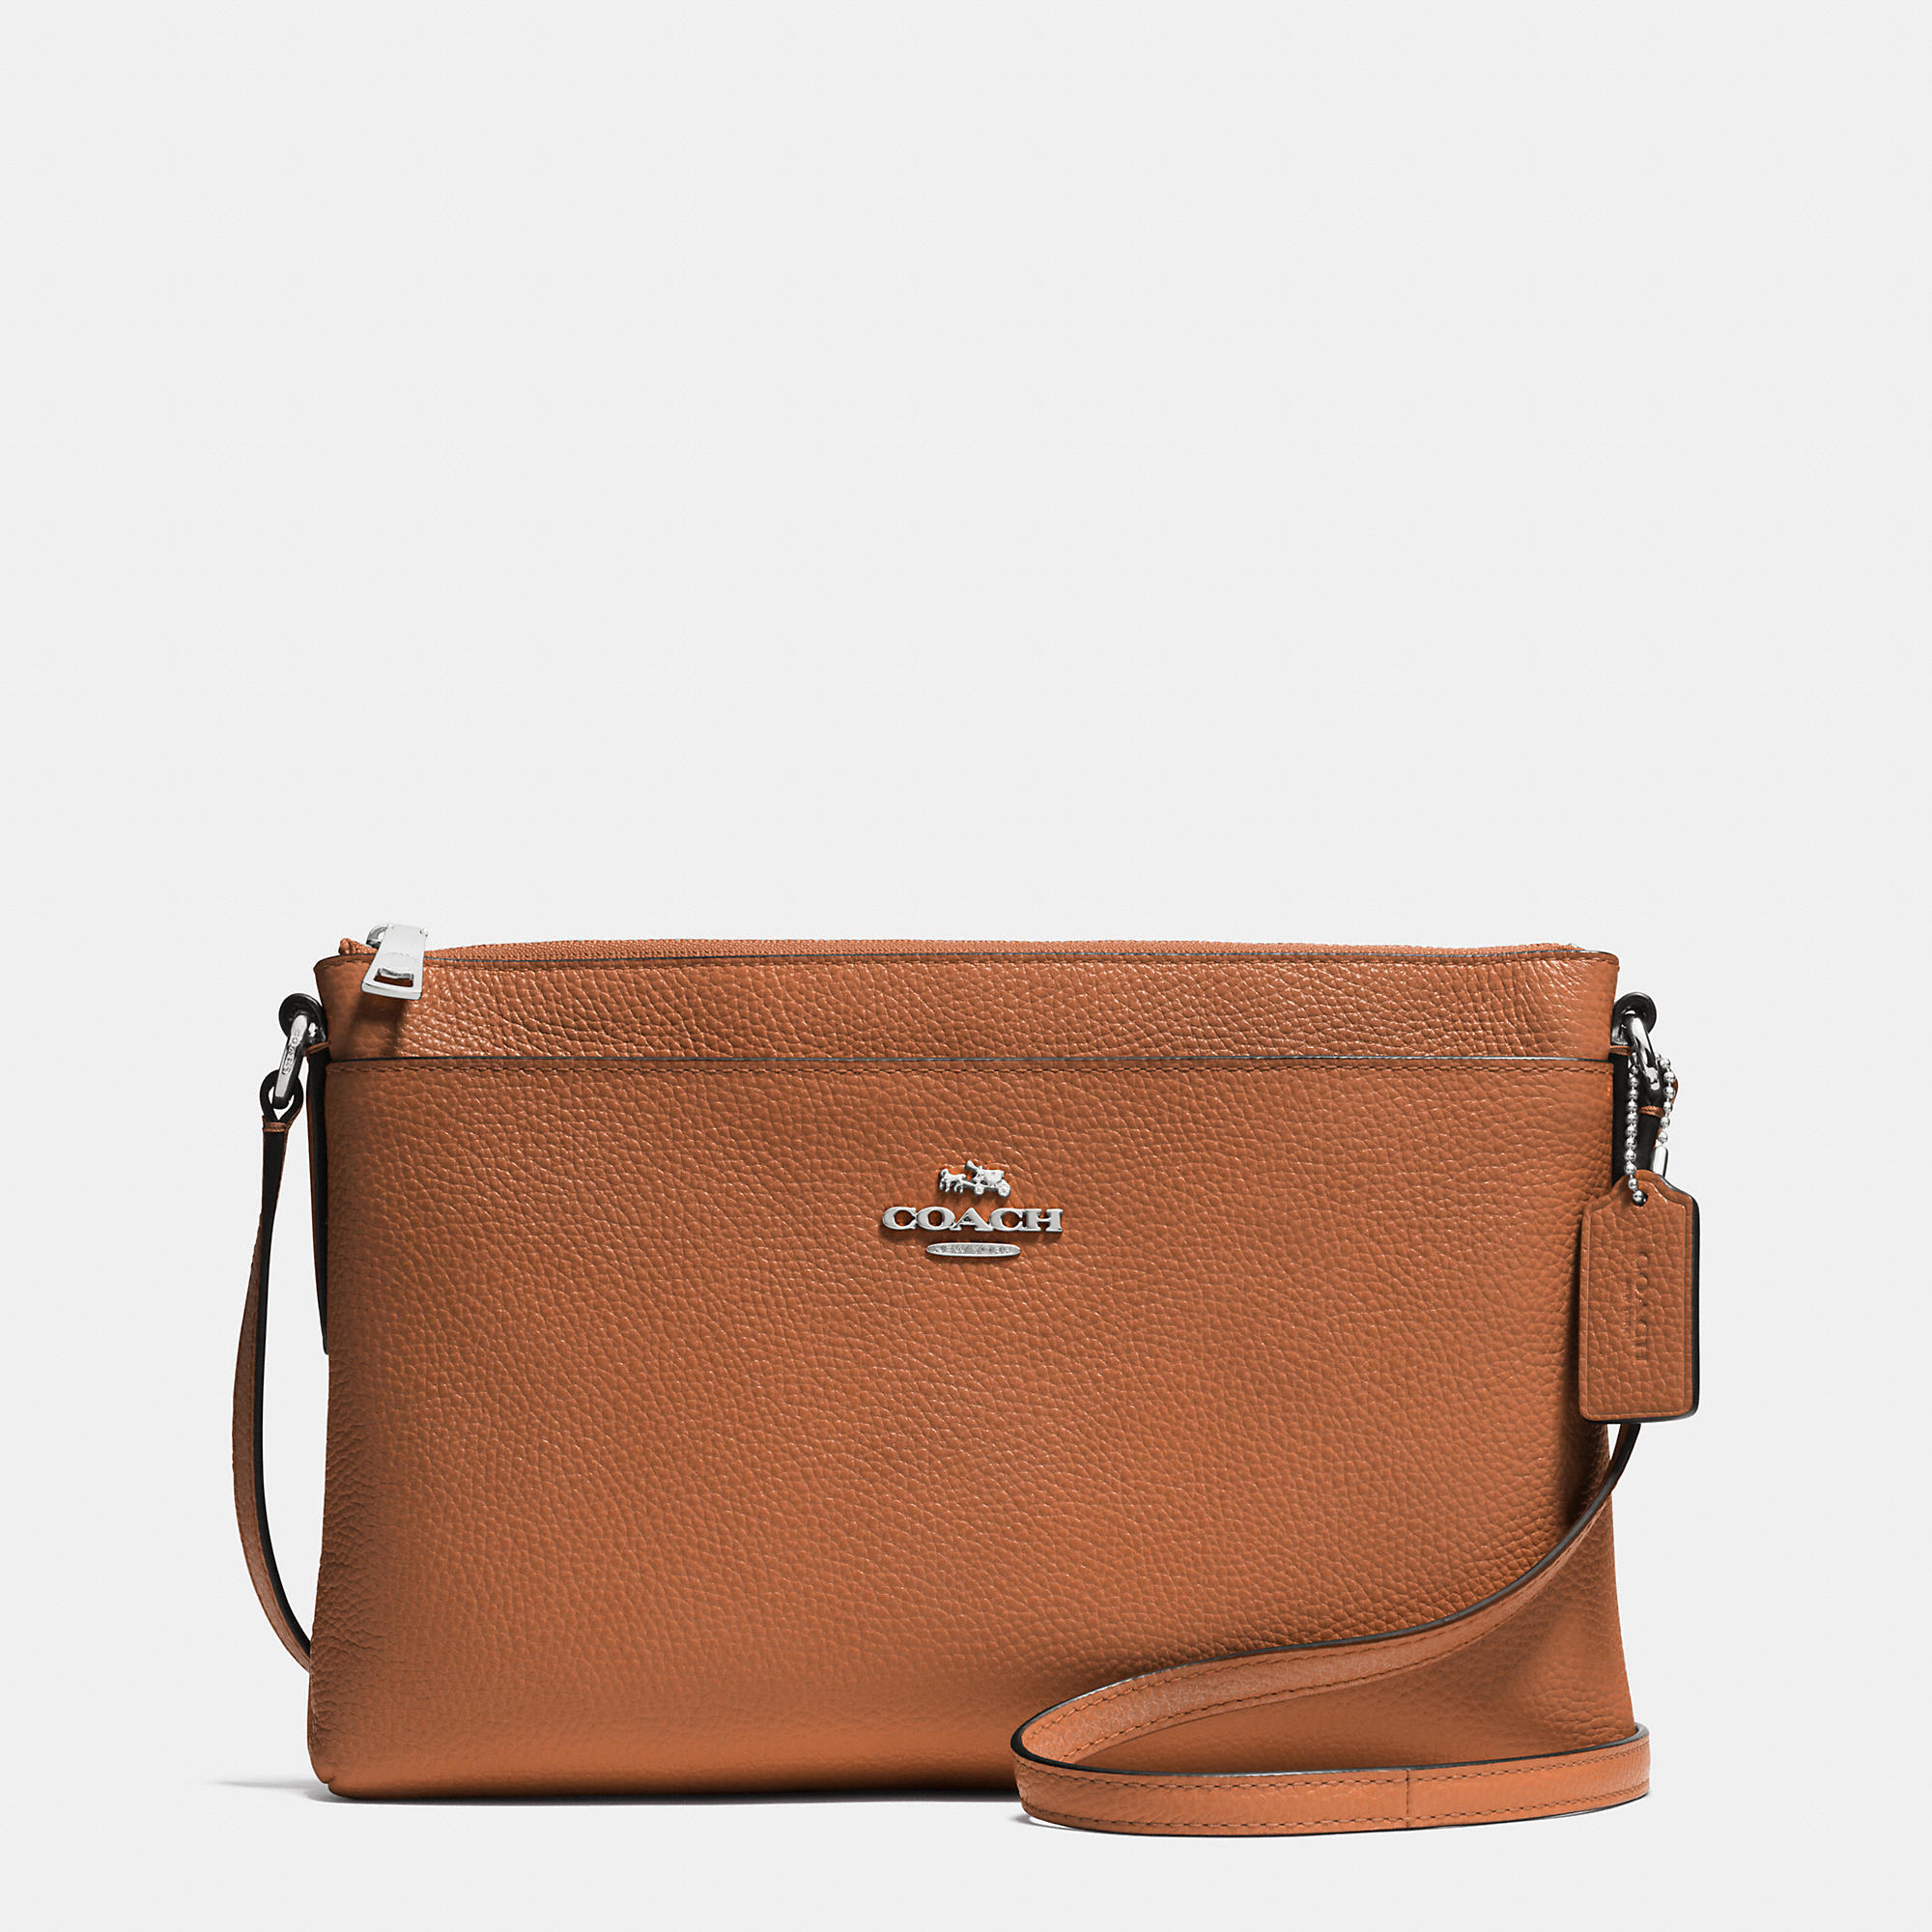 1485f20e57d ... sweden lyst coach journal crossbody in pebble leather in brown f13d9  d9239